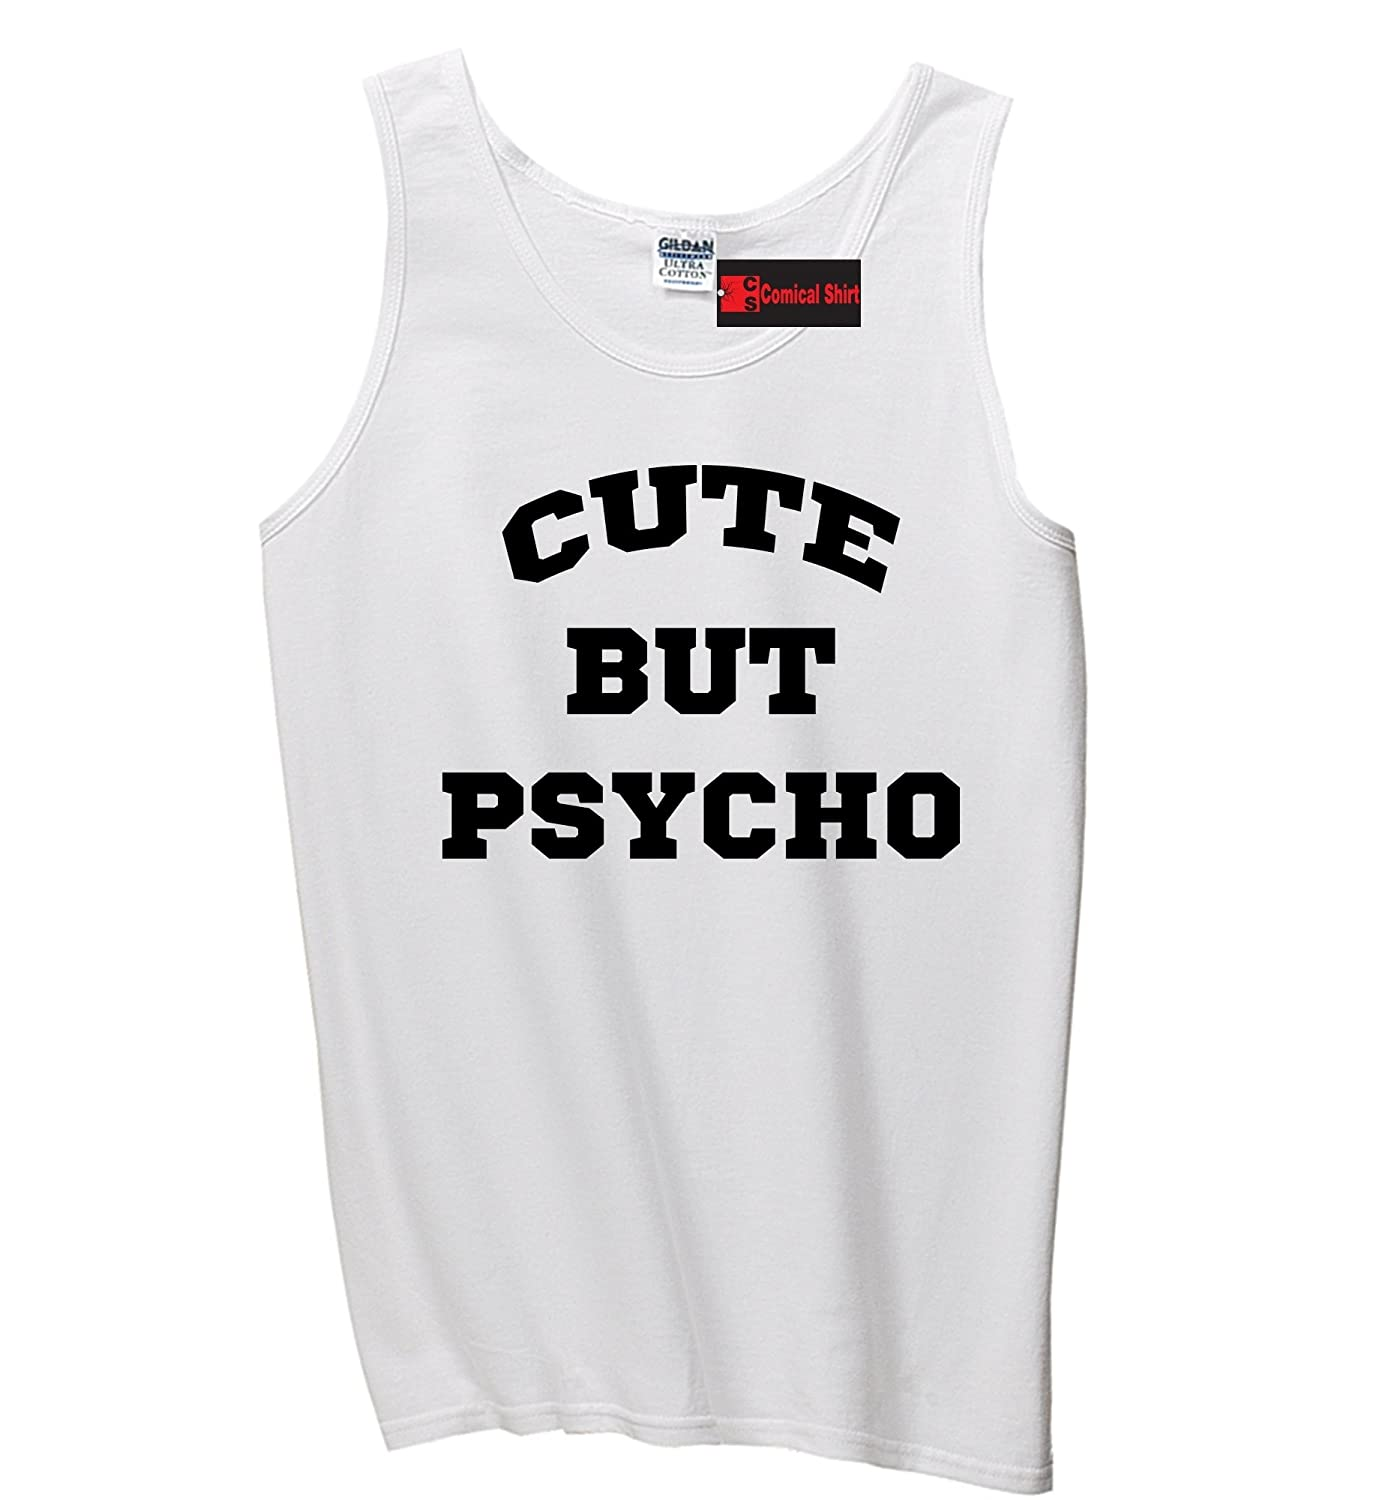 Comical Shirt Mens Cute But Psycho Funny Tee Cute Valentines Day Tank Top